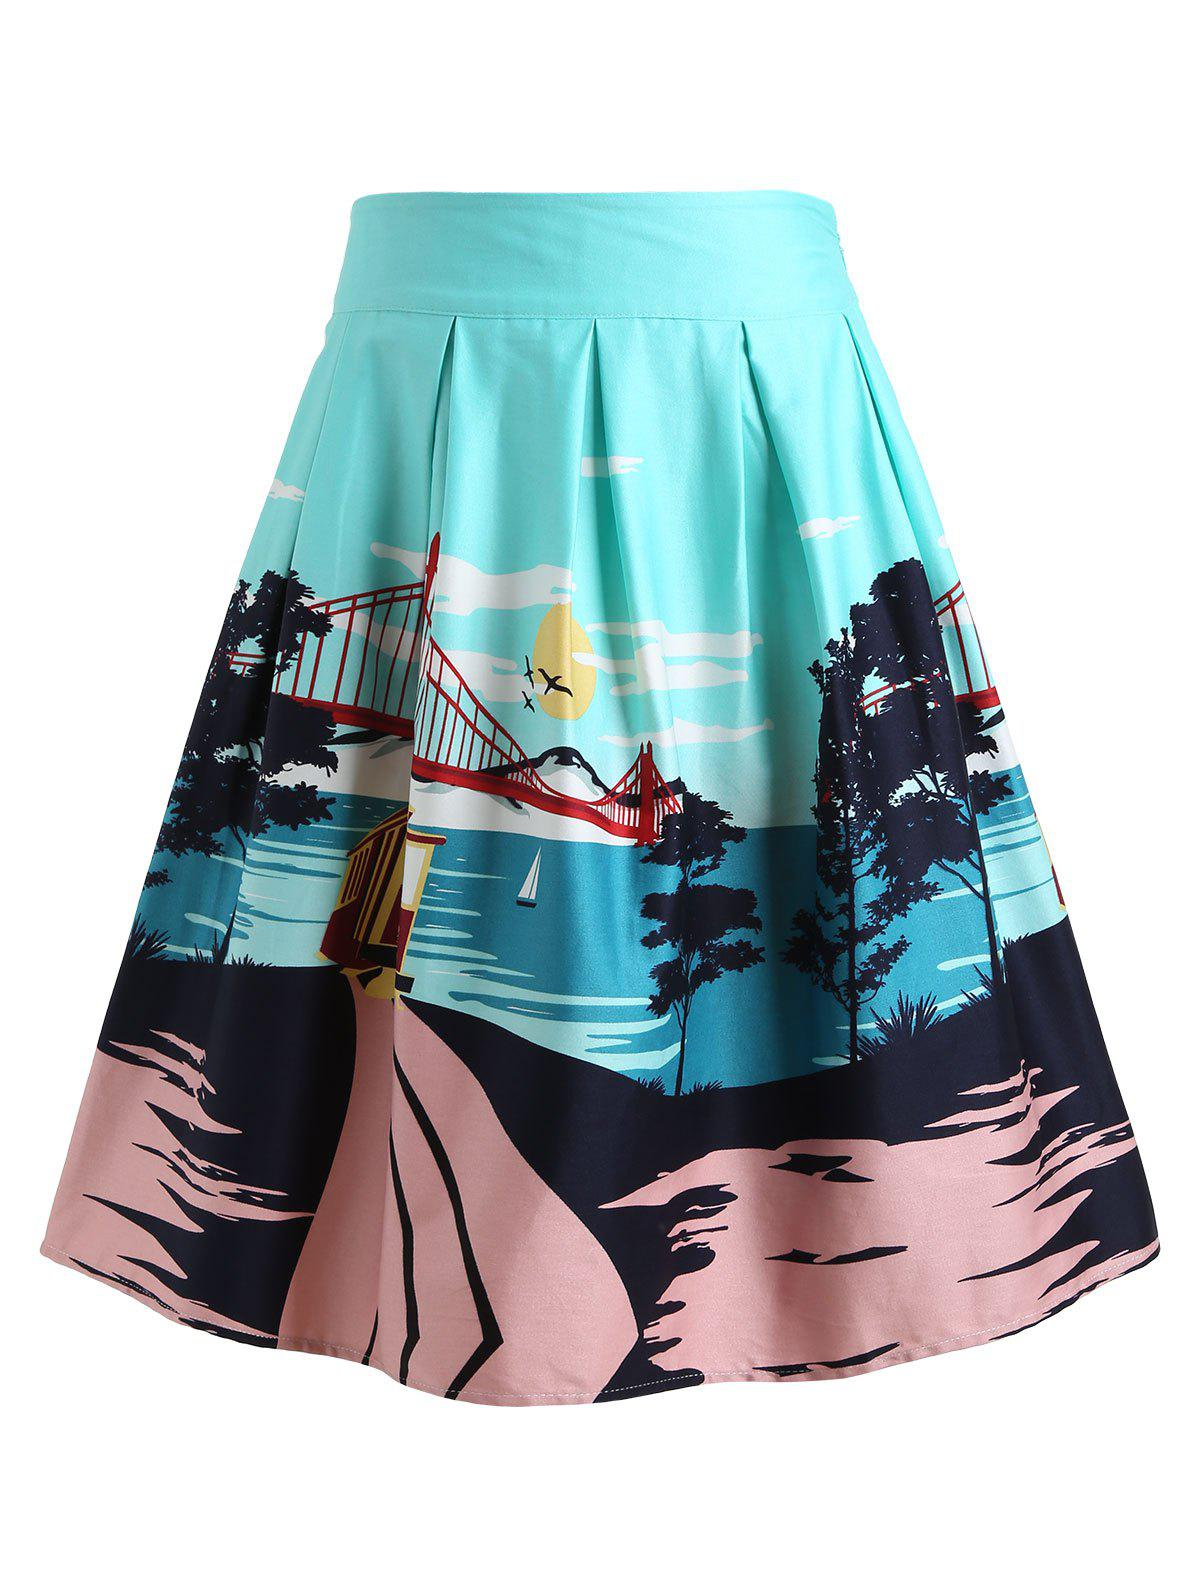 Scenery Print Skirt - ELECTRIC BLUE XL